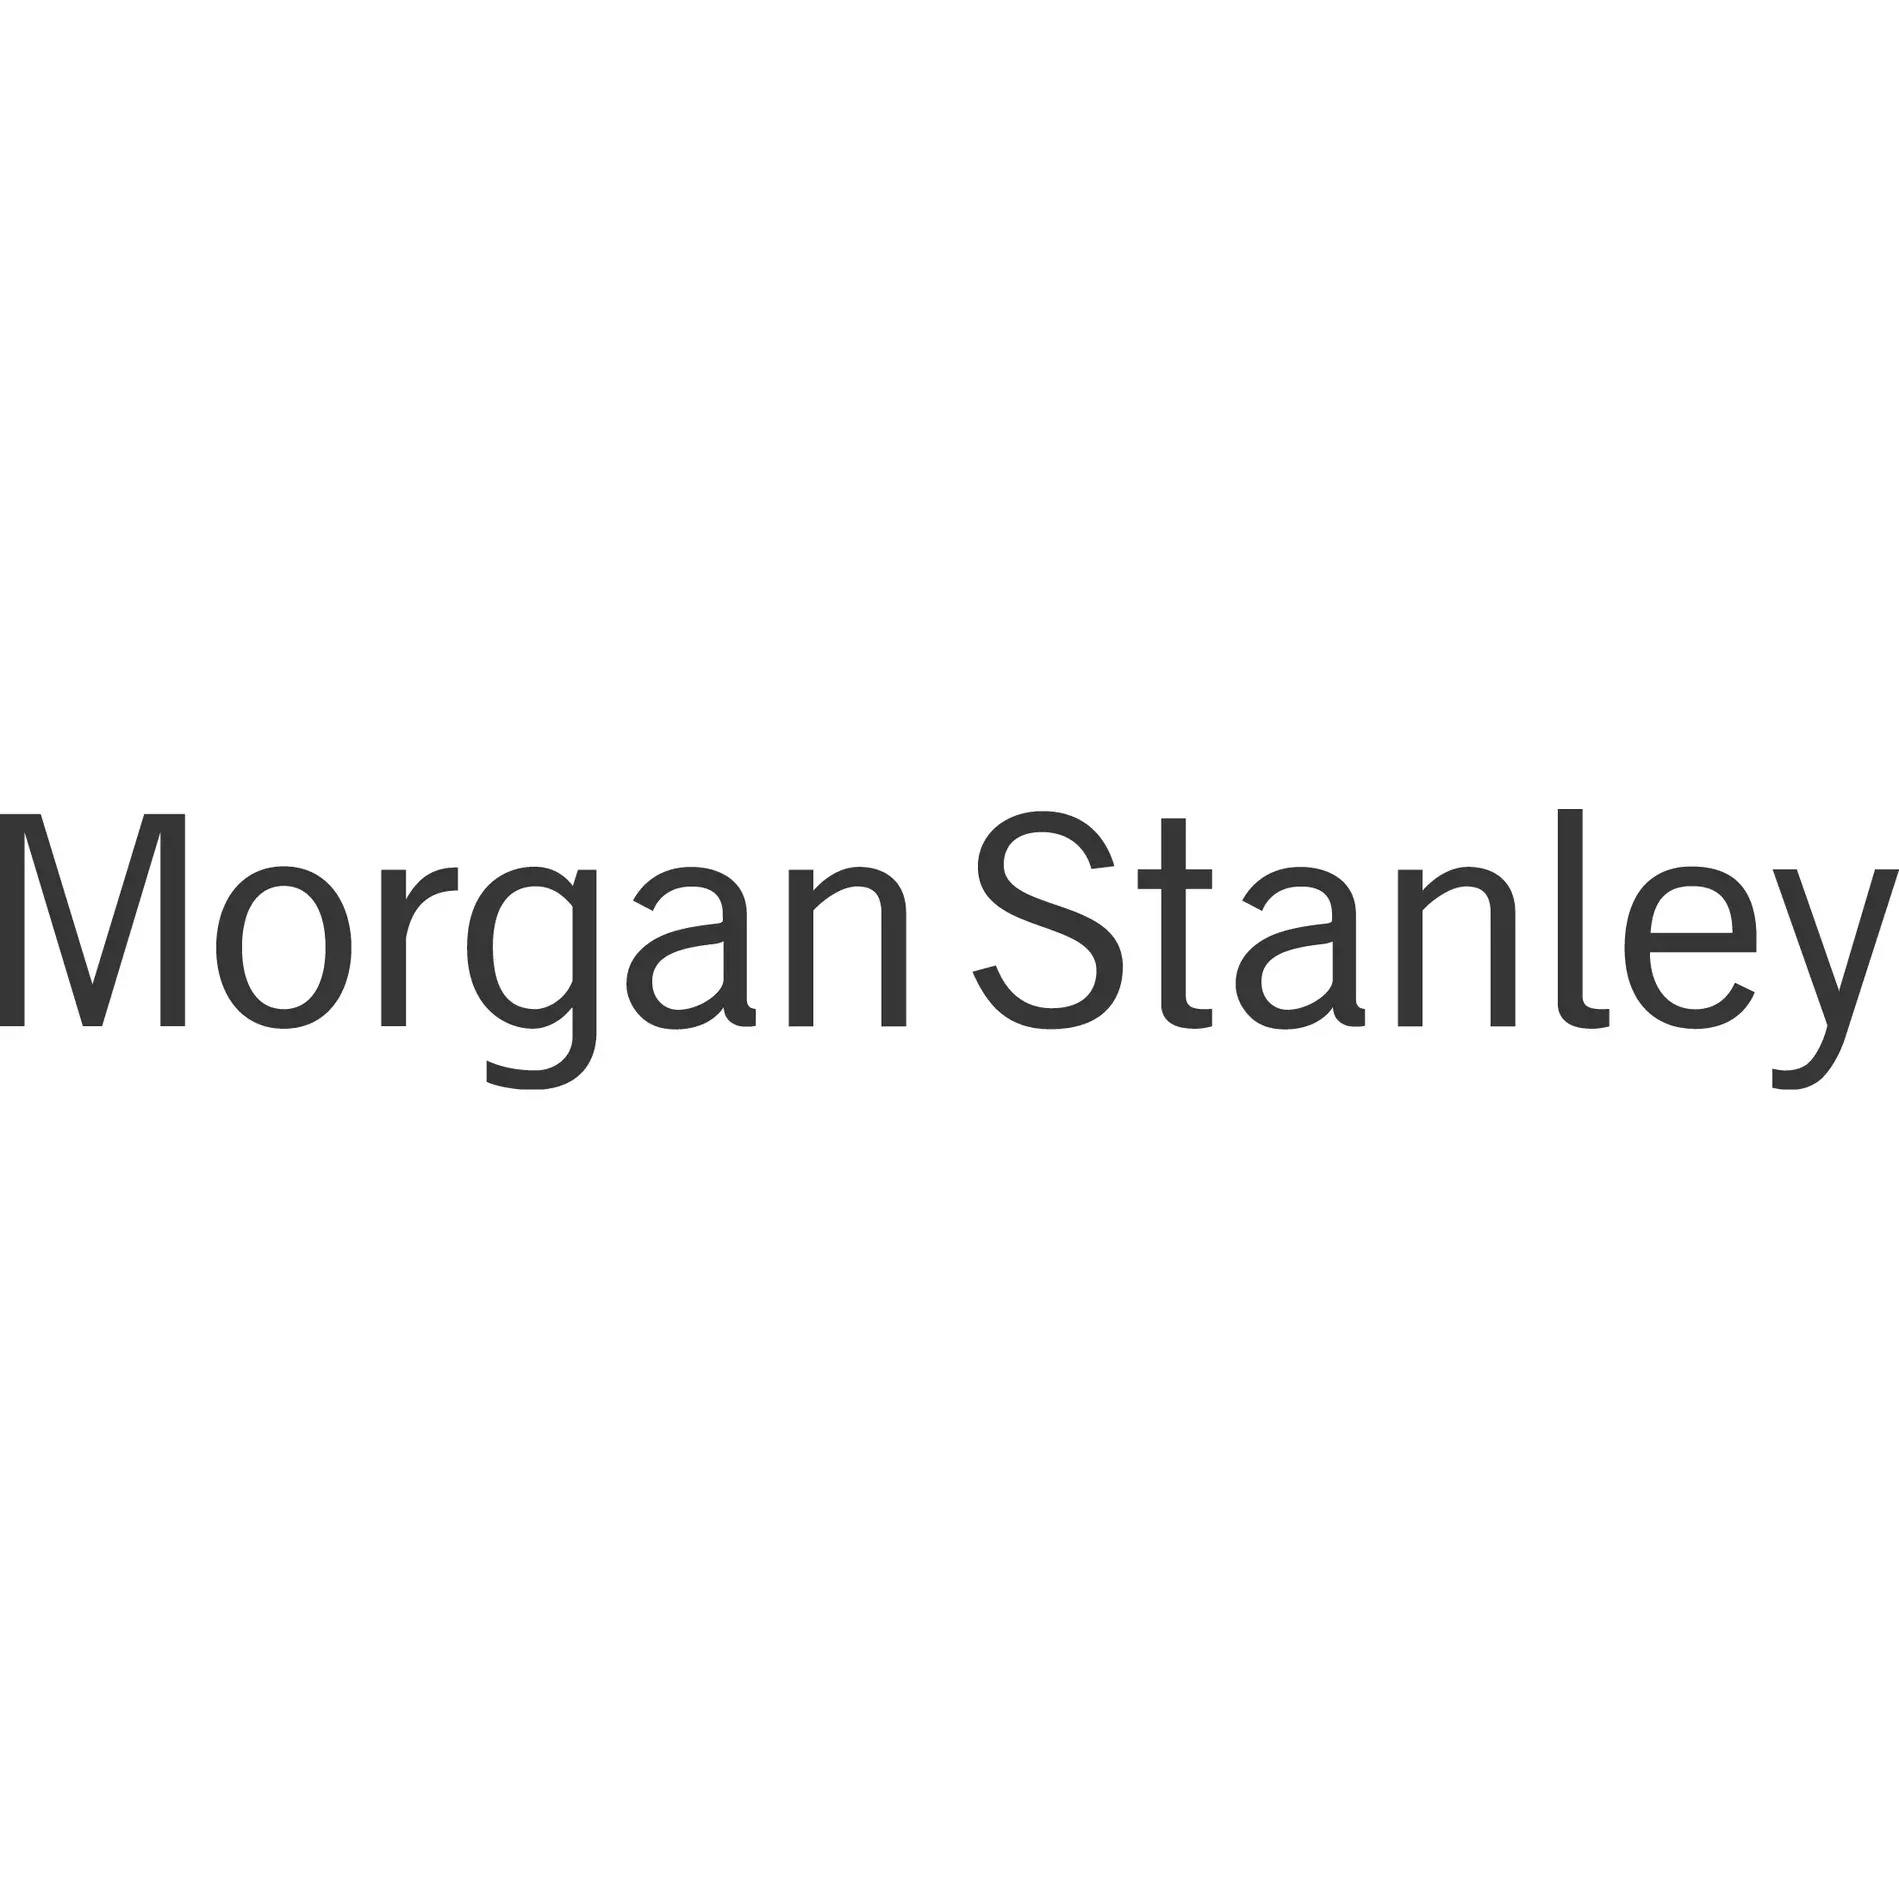 The Bay Group - Morgan Stanley | Financial Advisor in Irvine,California